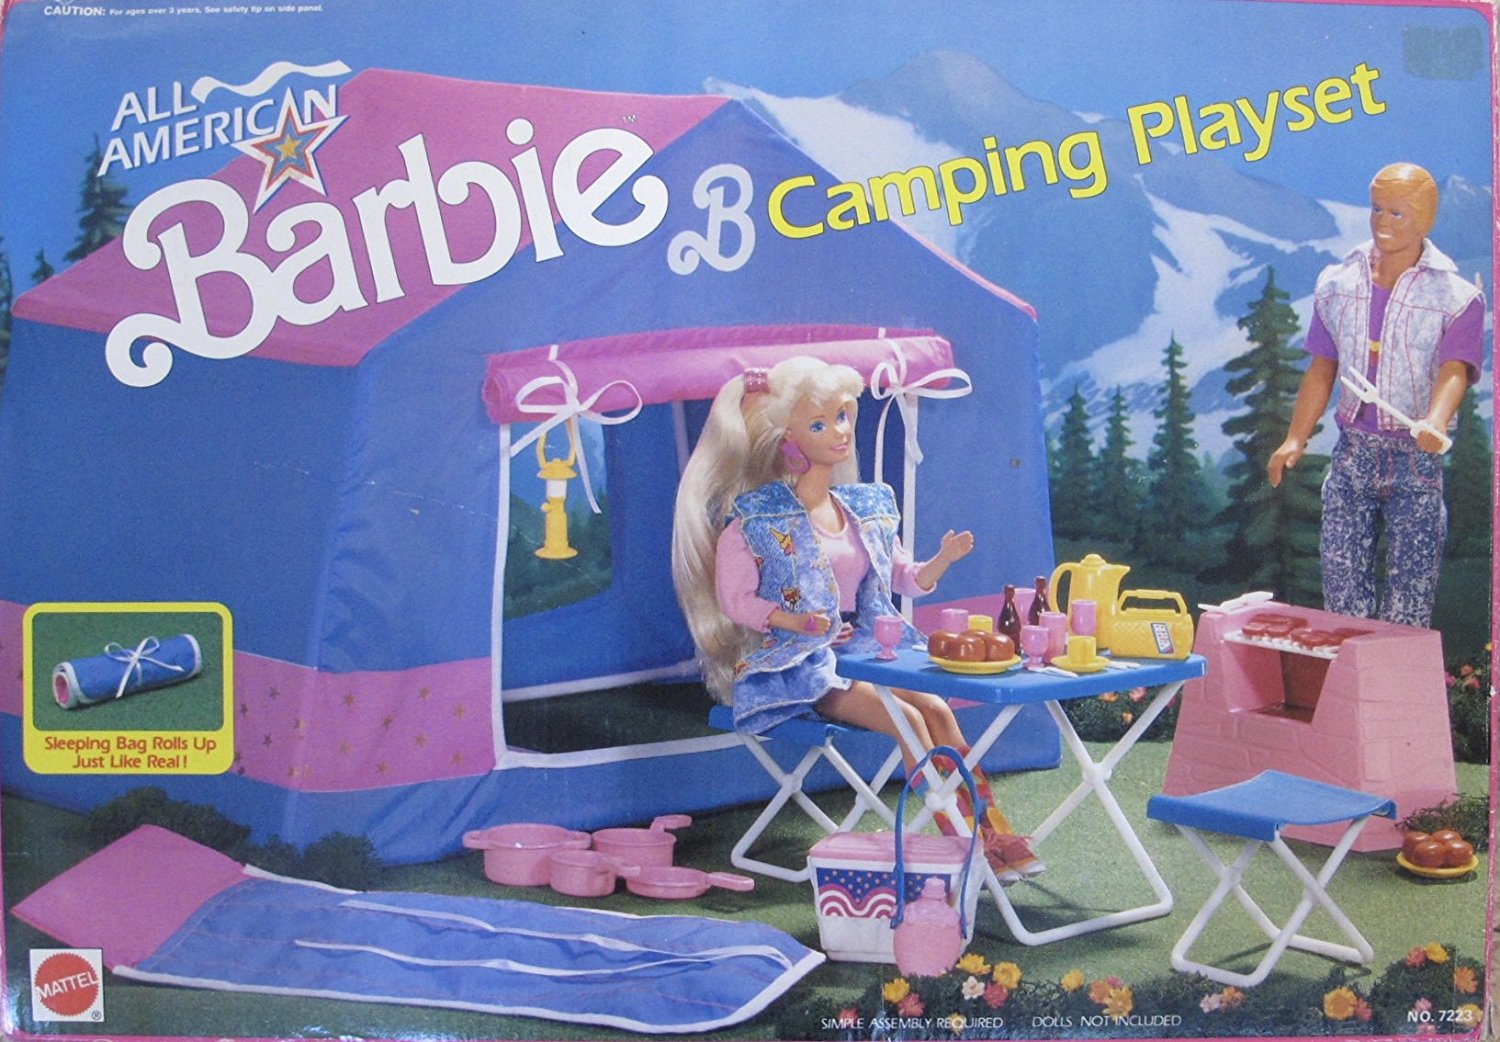 1990 All American BARBIE CAMPING Playset NO 7223 MATTEL PARTS